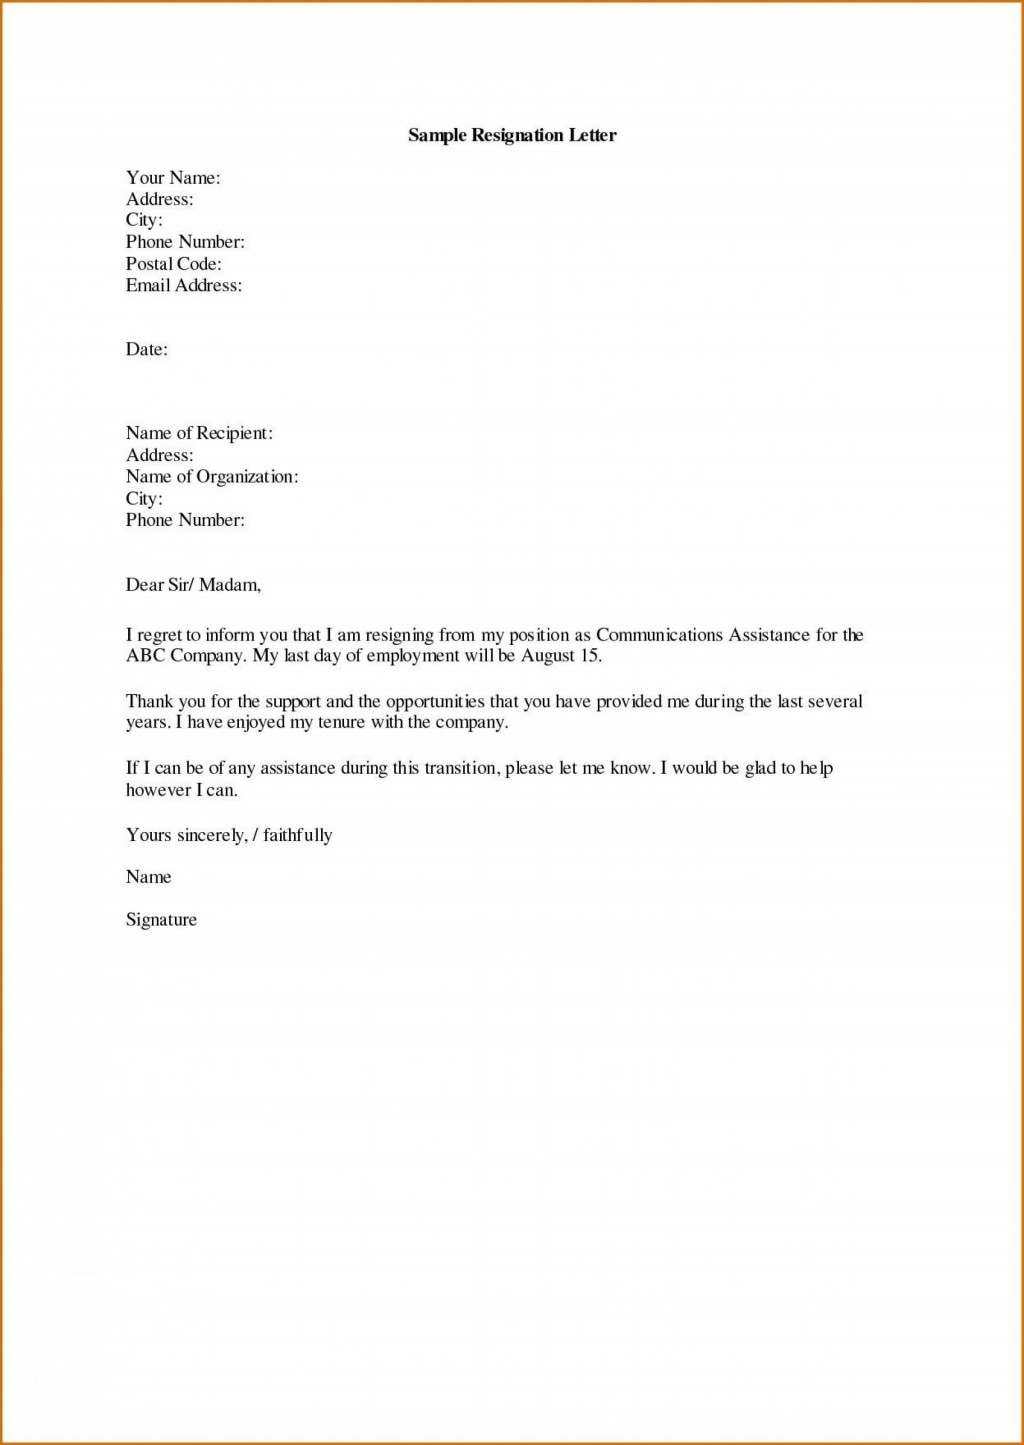 003 Unforgettable Resignation Letter Sample Free Doc Picture  .docLarge